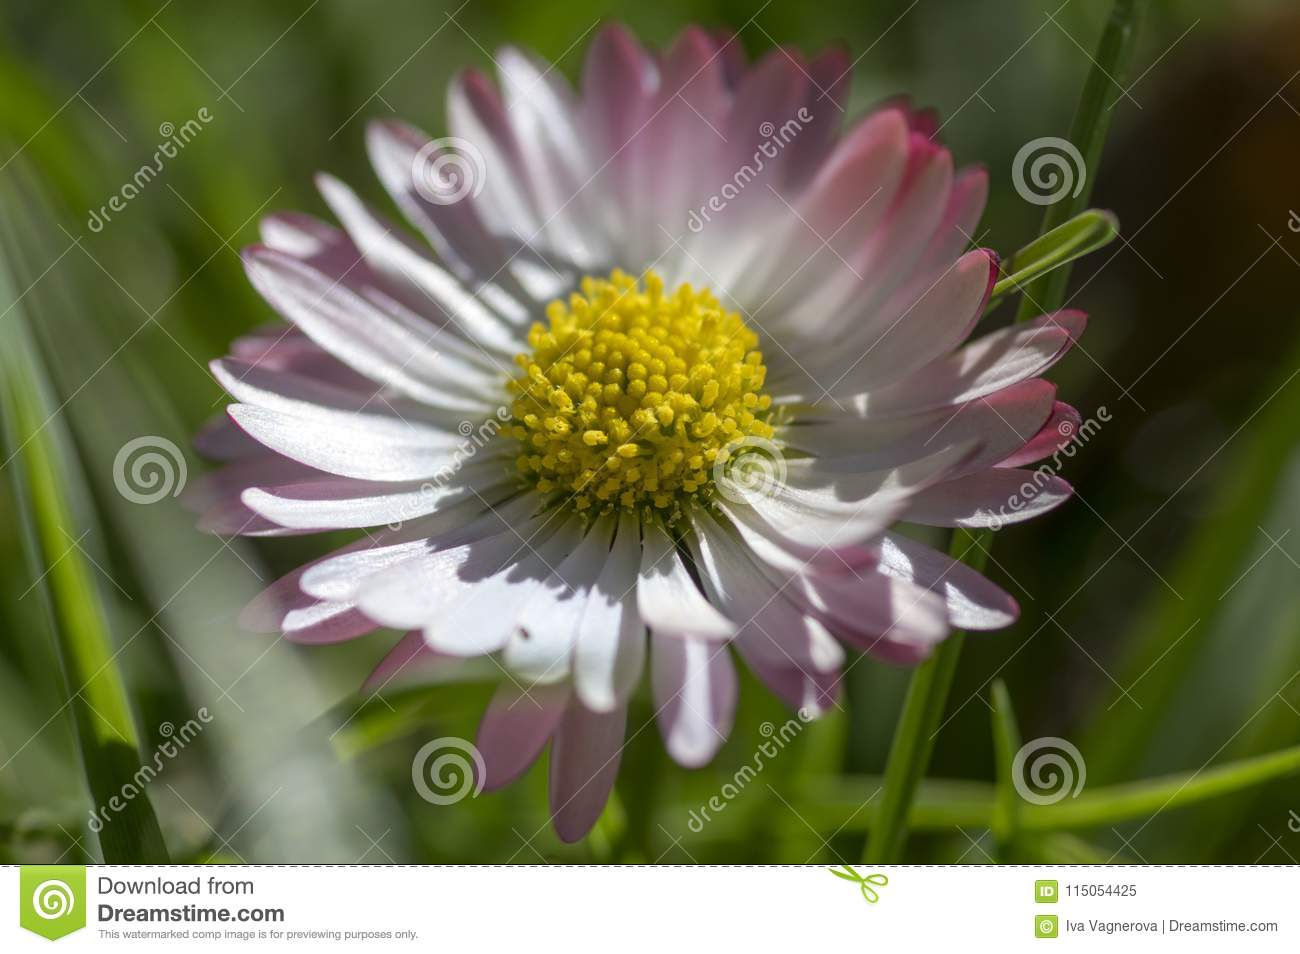 Amazing Daisies Bellis Perennis Flower Heads In The Grass